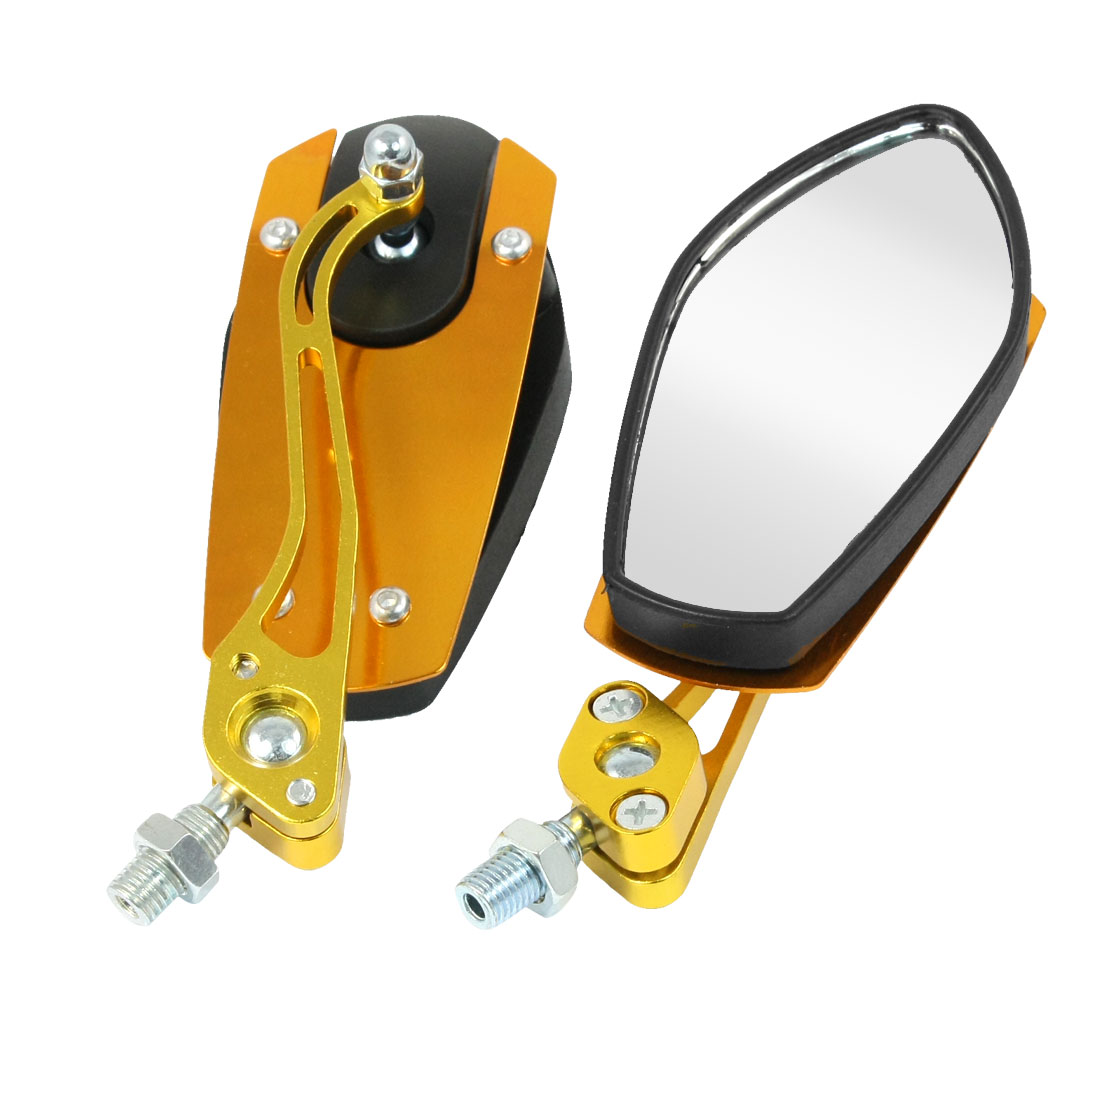 2 Pcs Gold Tone Black Shell Rearview Blind Spot Mirrors for Motorbike